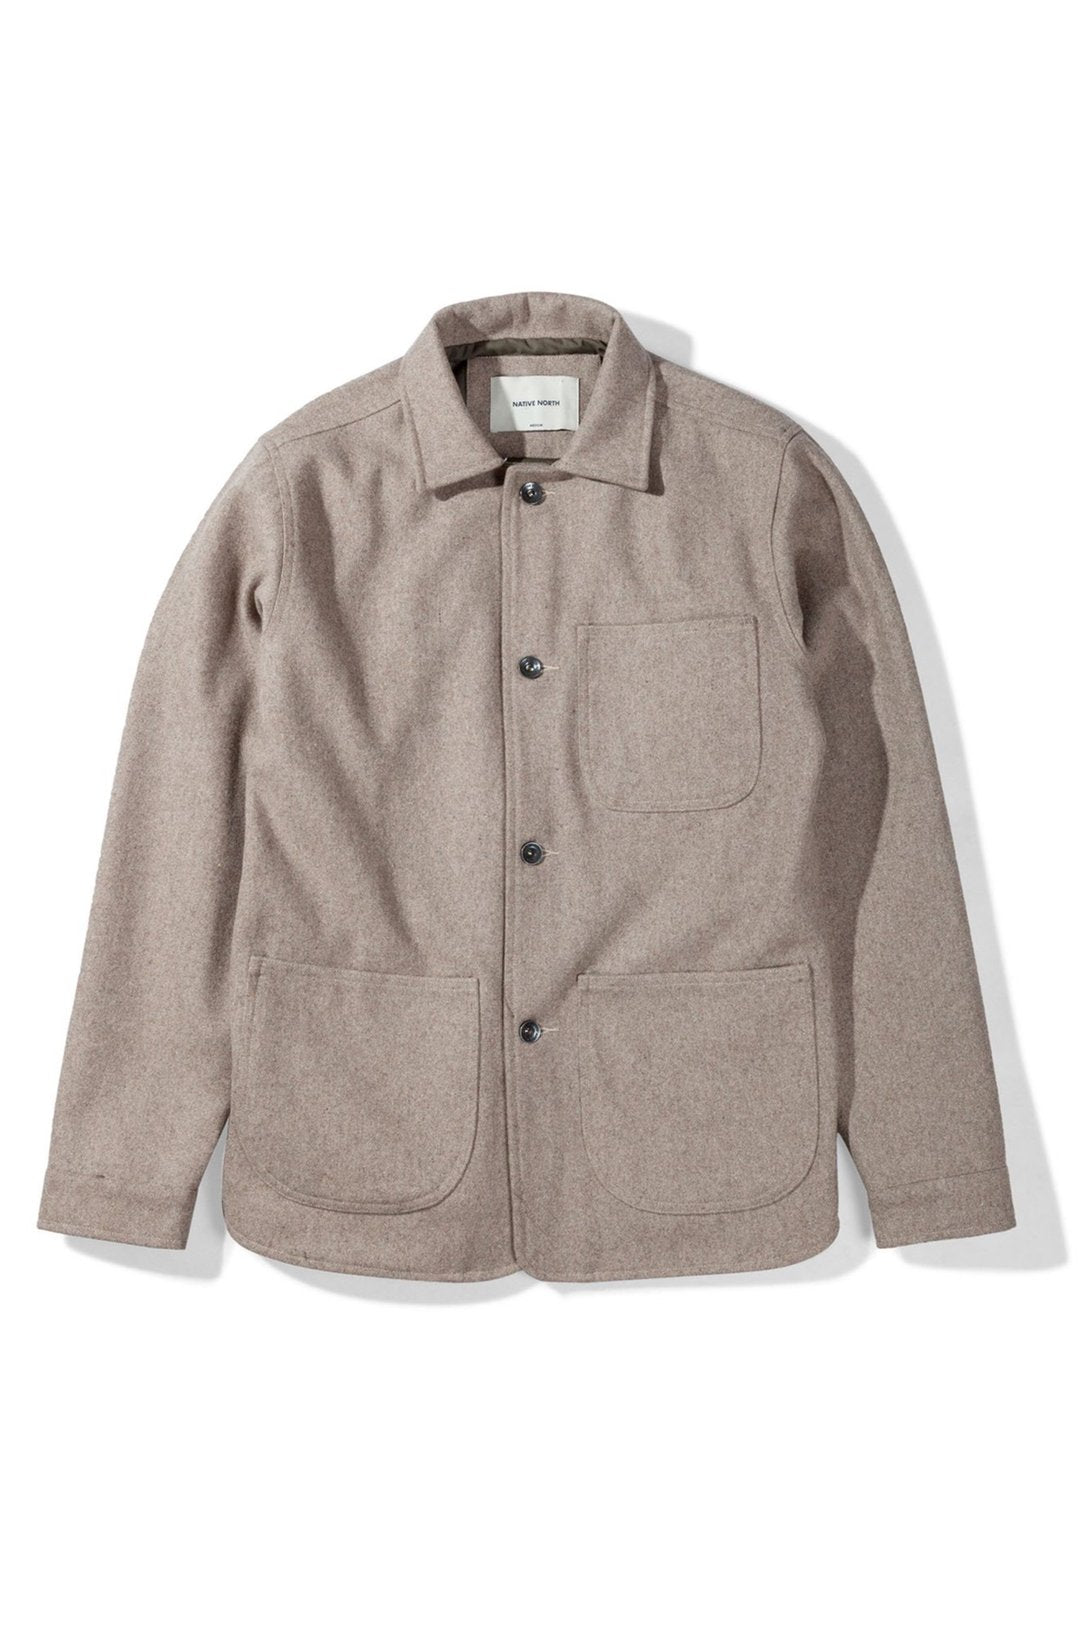 Native North Wool Utility Jacket